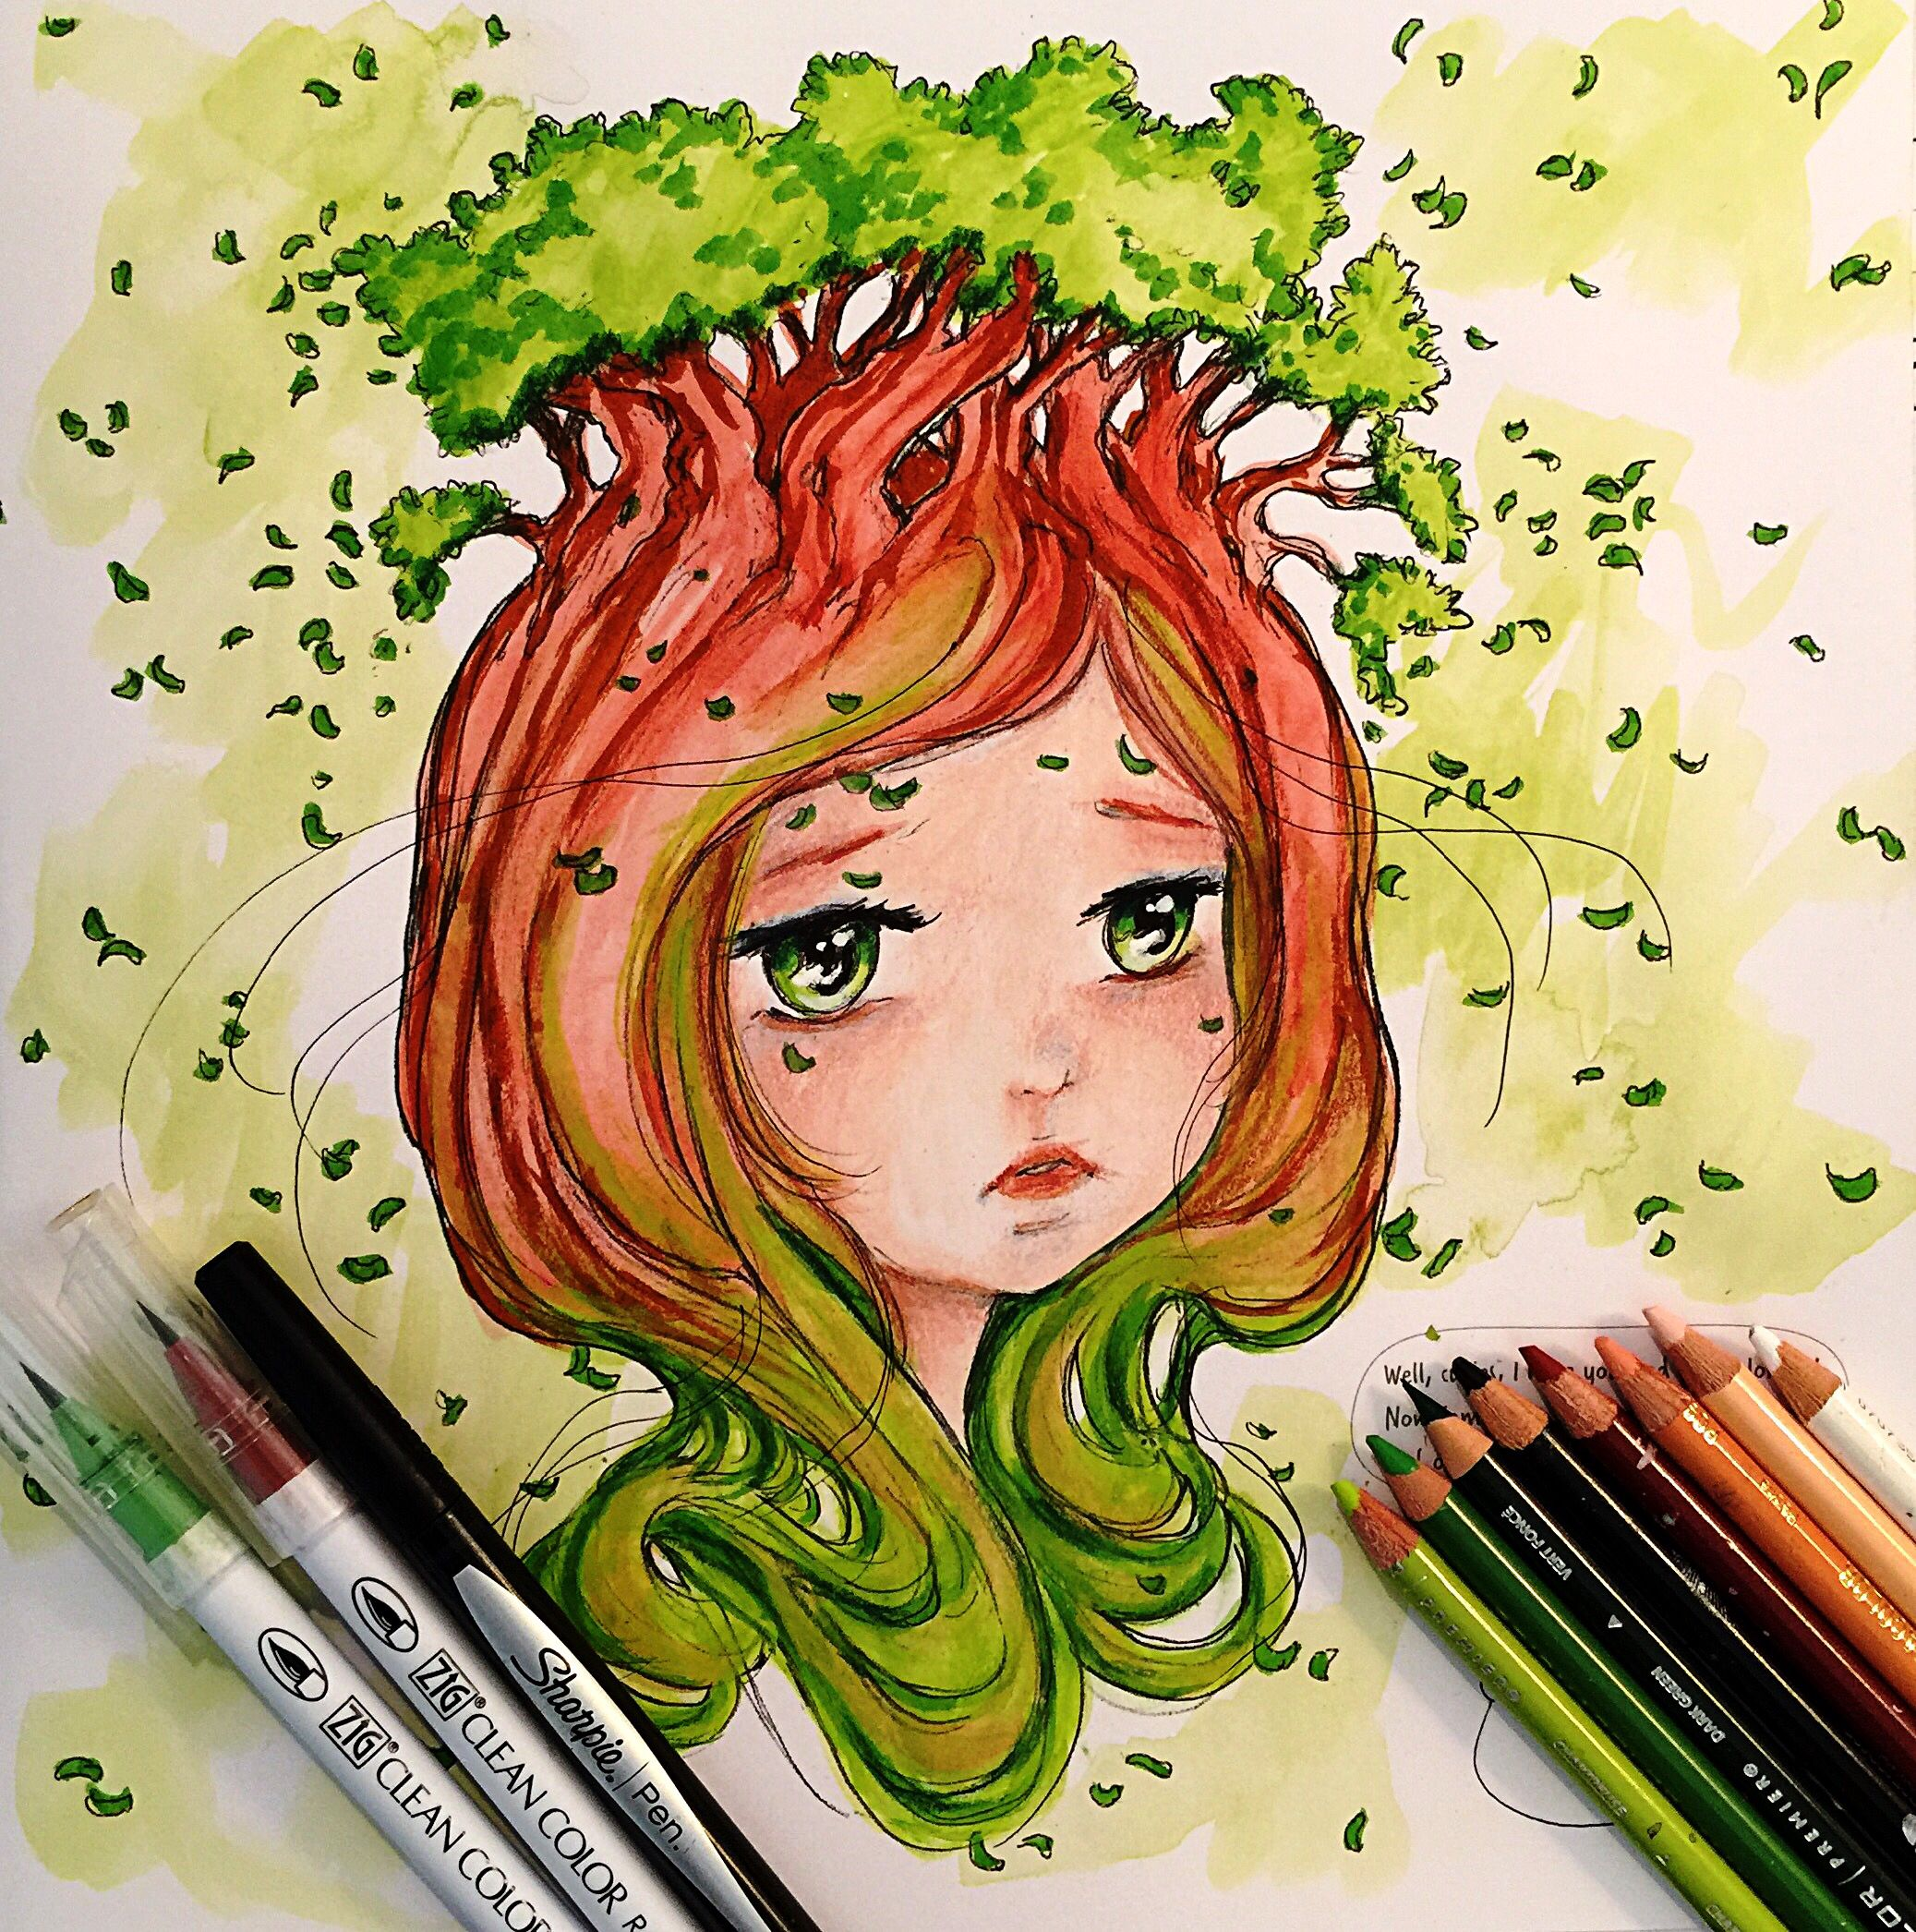 Coloring In Pop Manga By Camilla D Errico Manga Coloring Book Mermaid Coloring Book Coloring Books